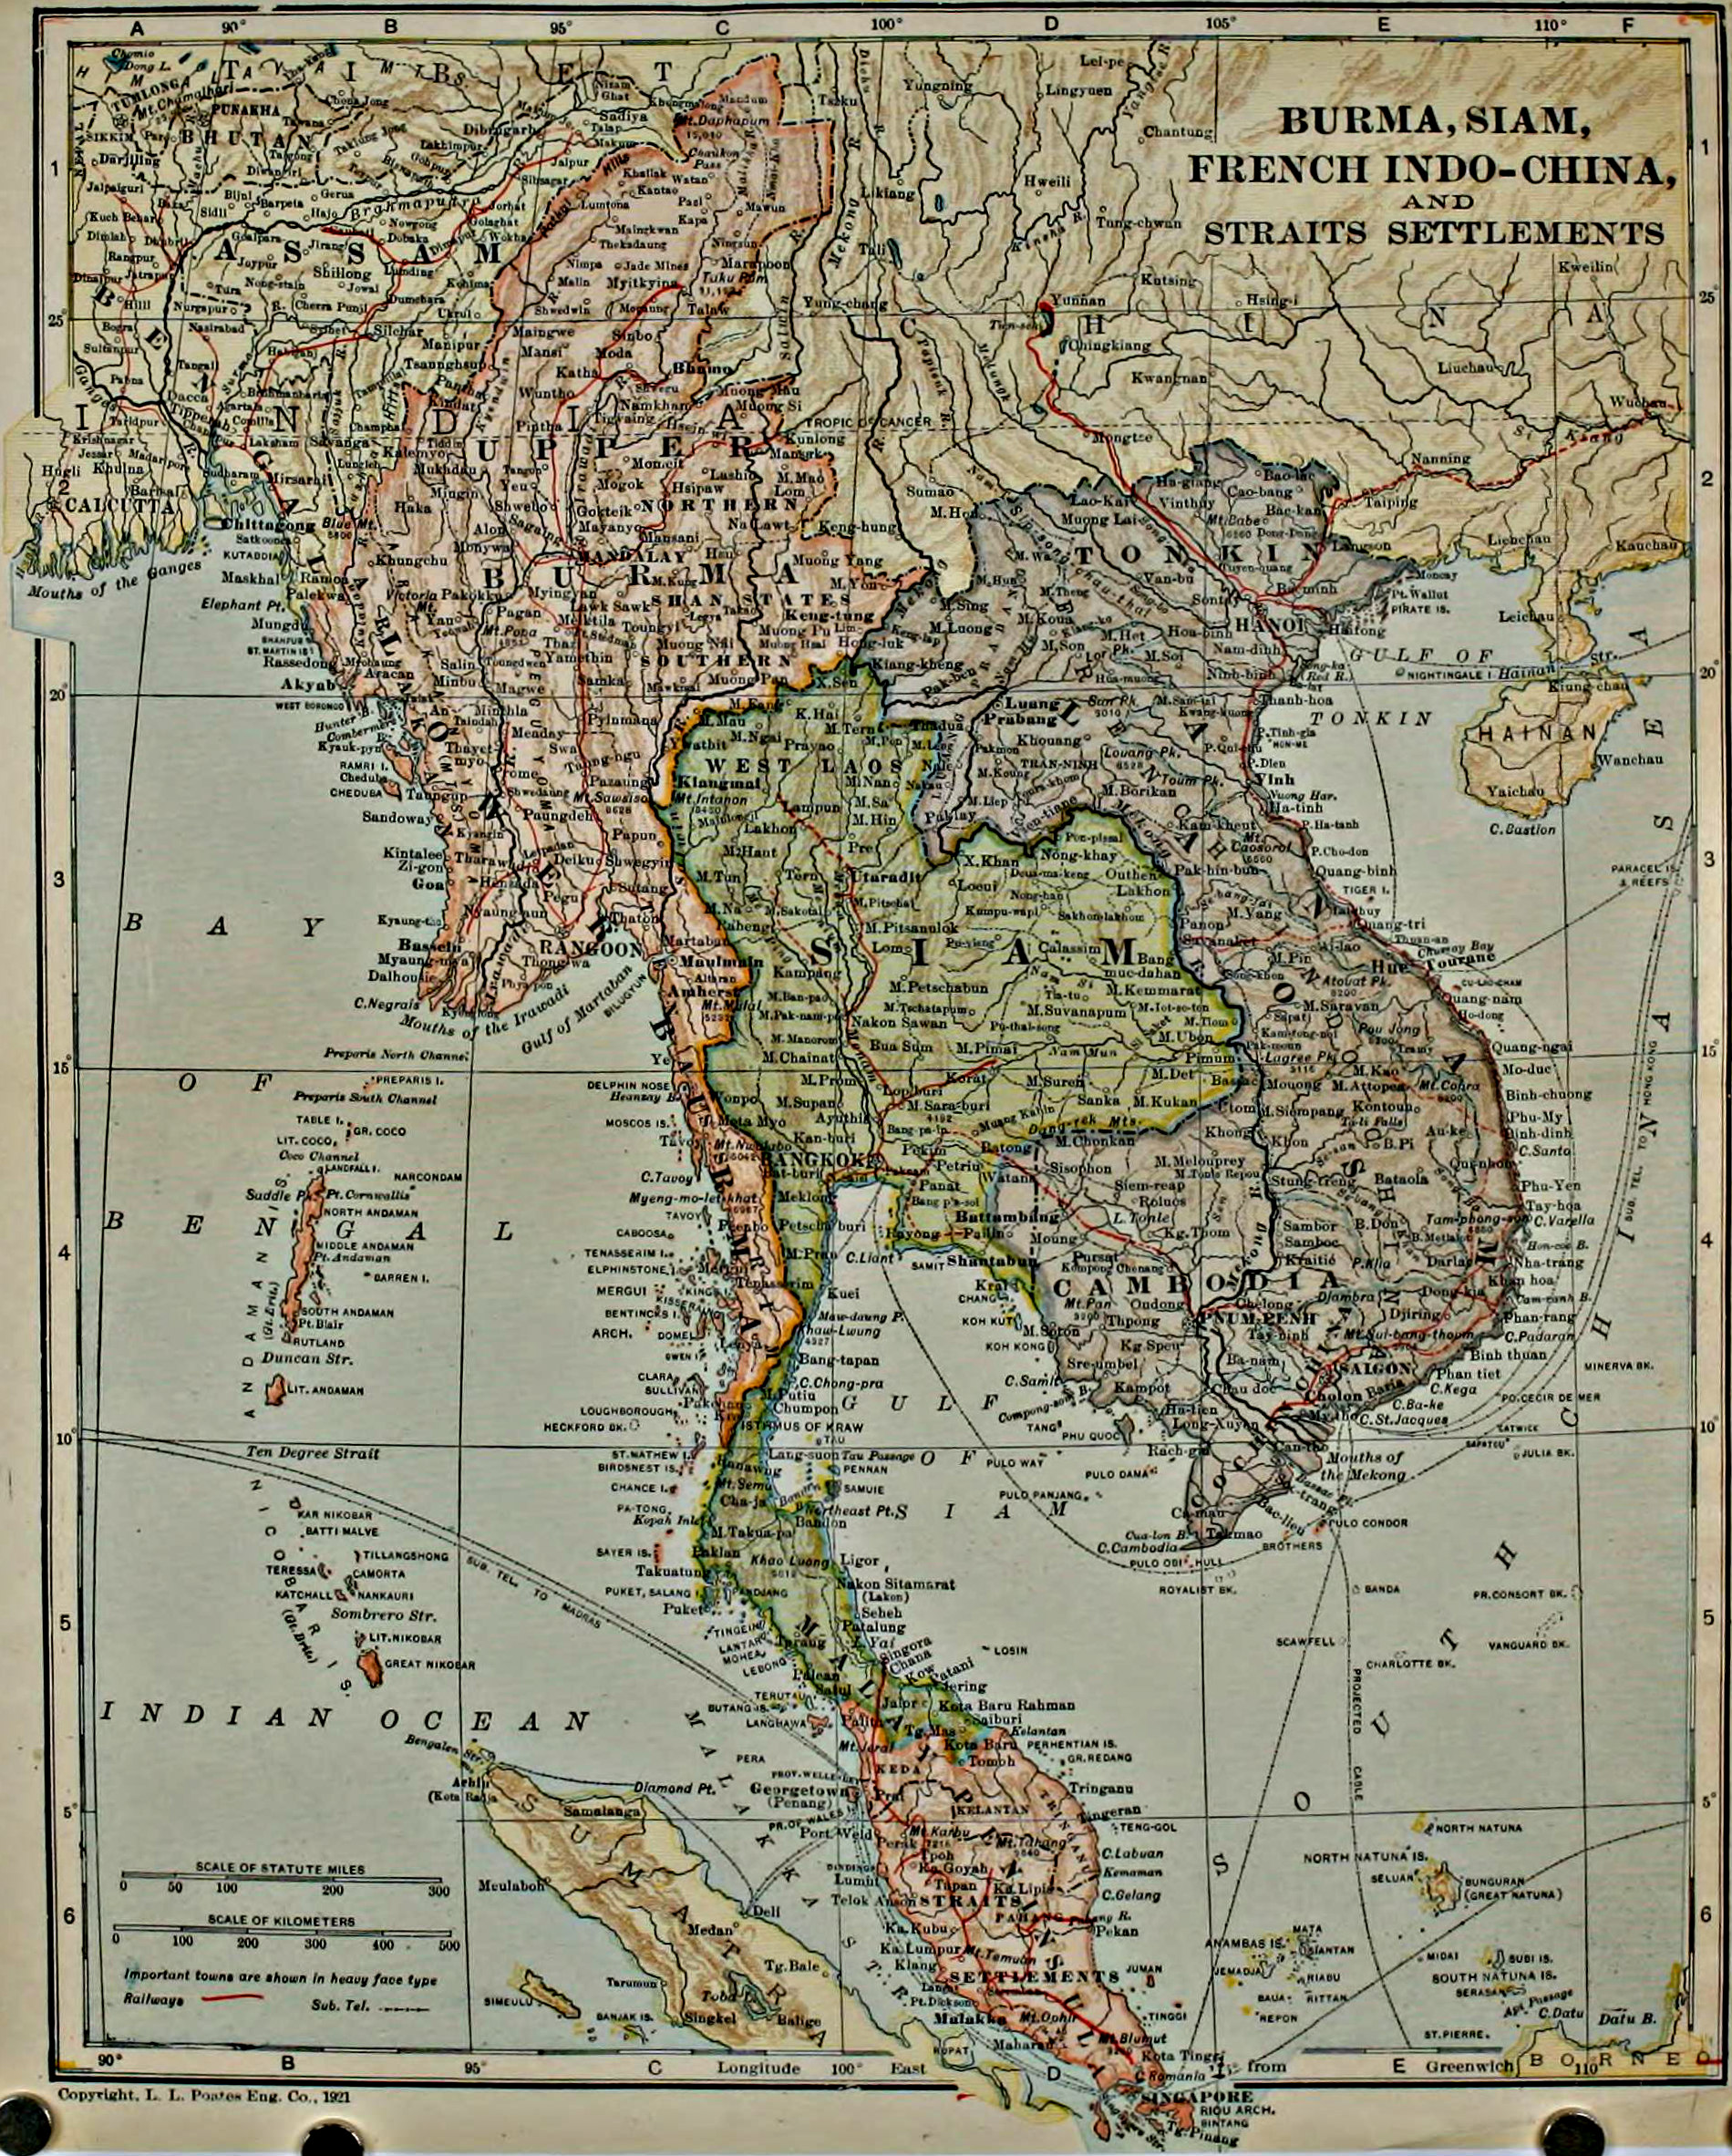 Filecolliers  Burma Map Of Burma Siam French Indo China